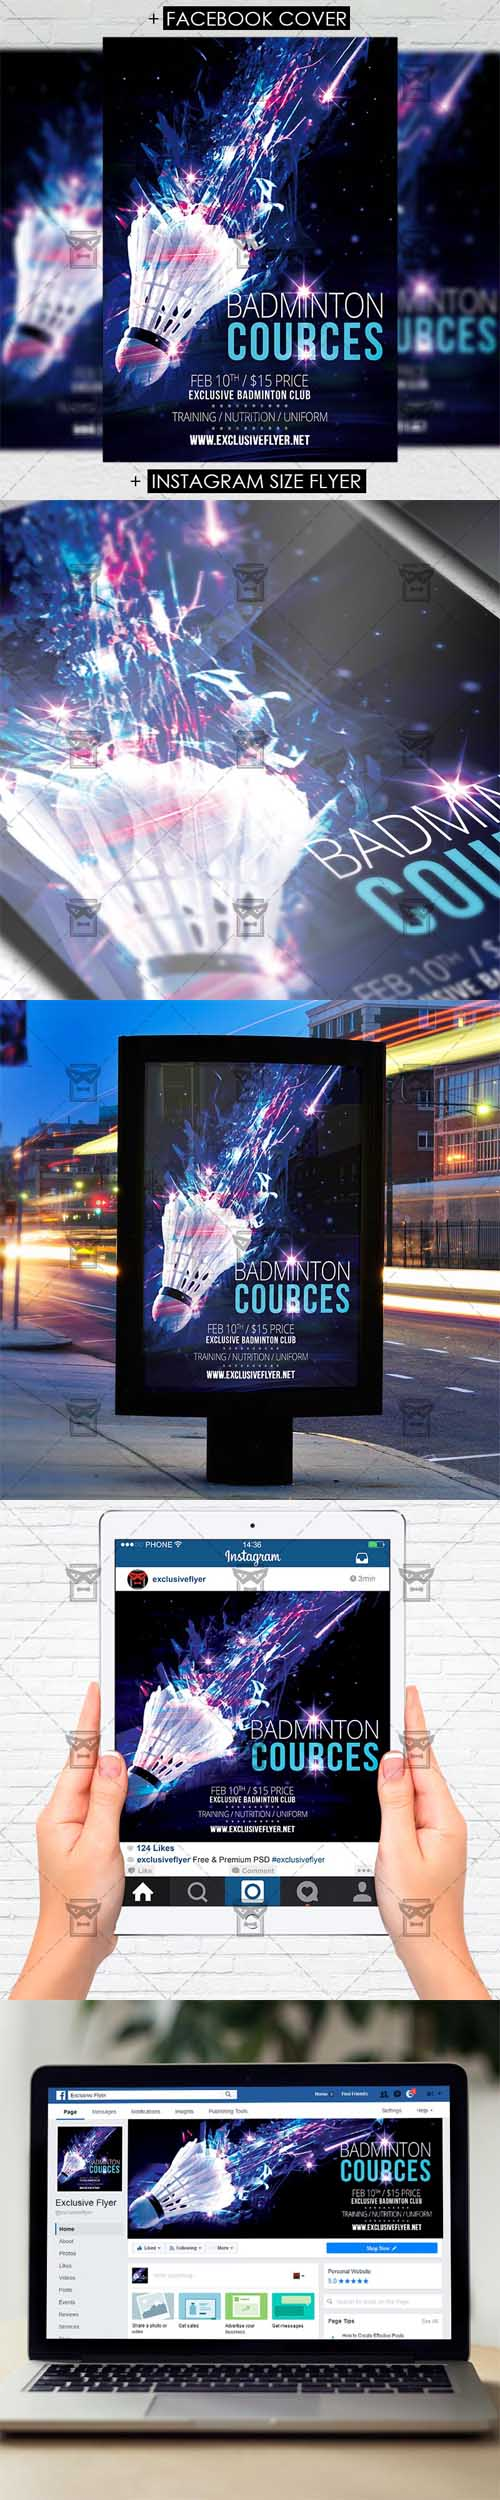 Flyer Template - Badminton Cources